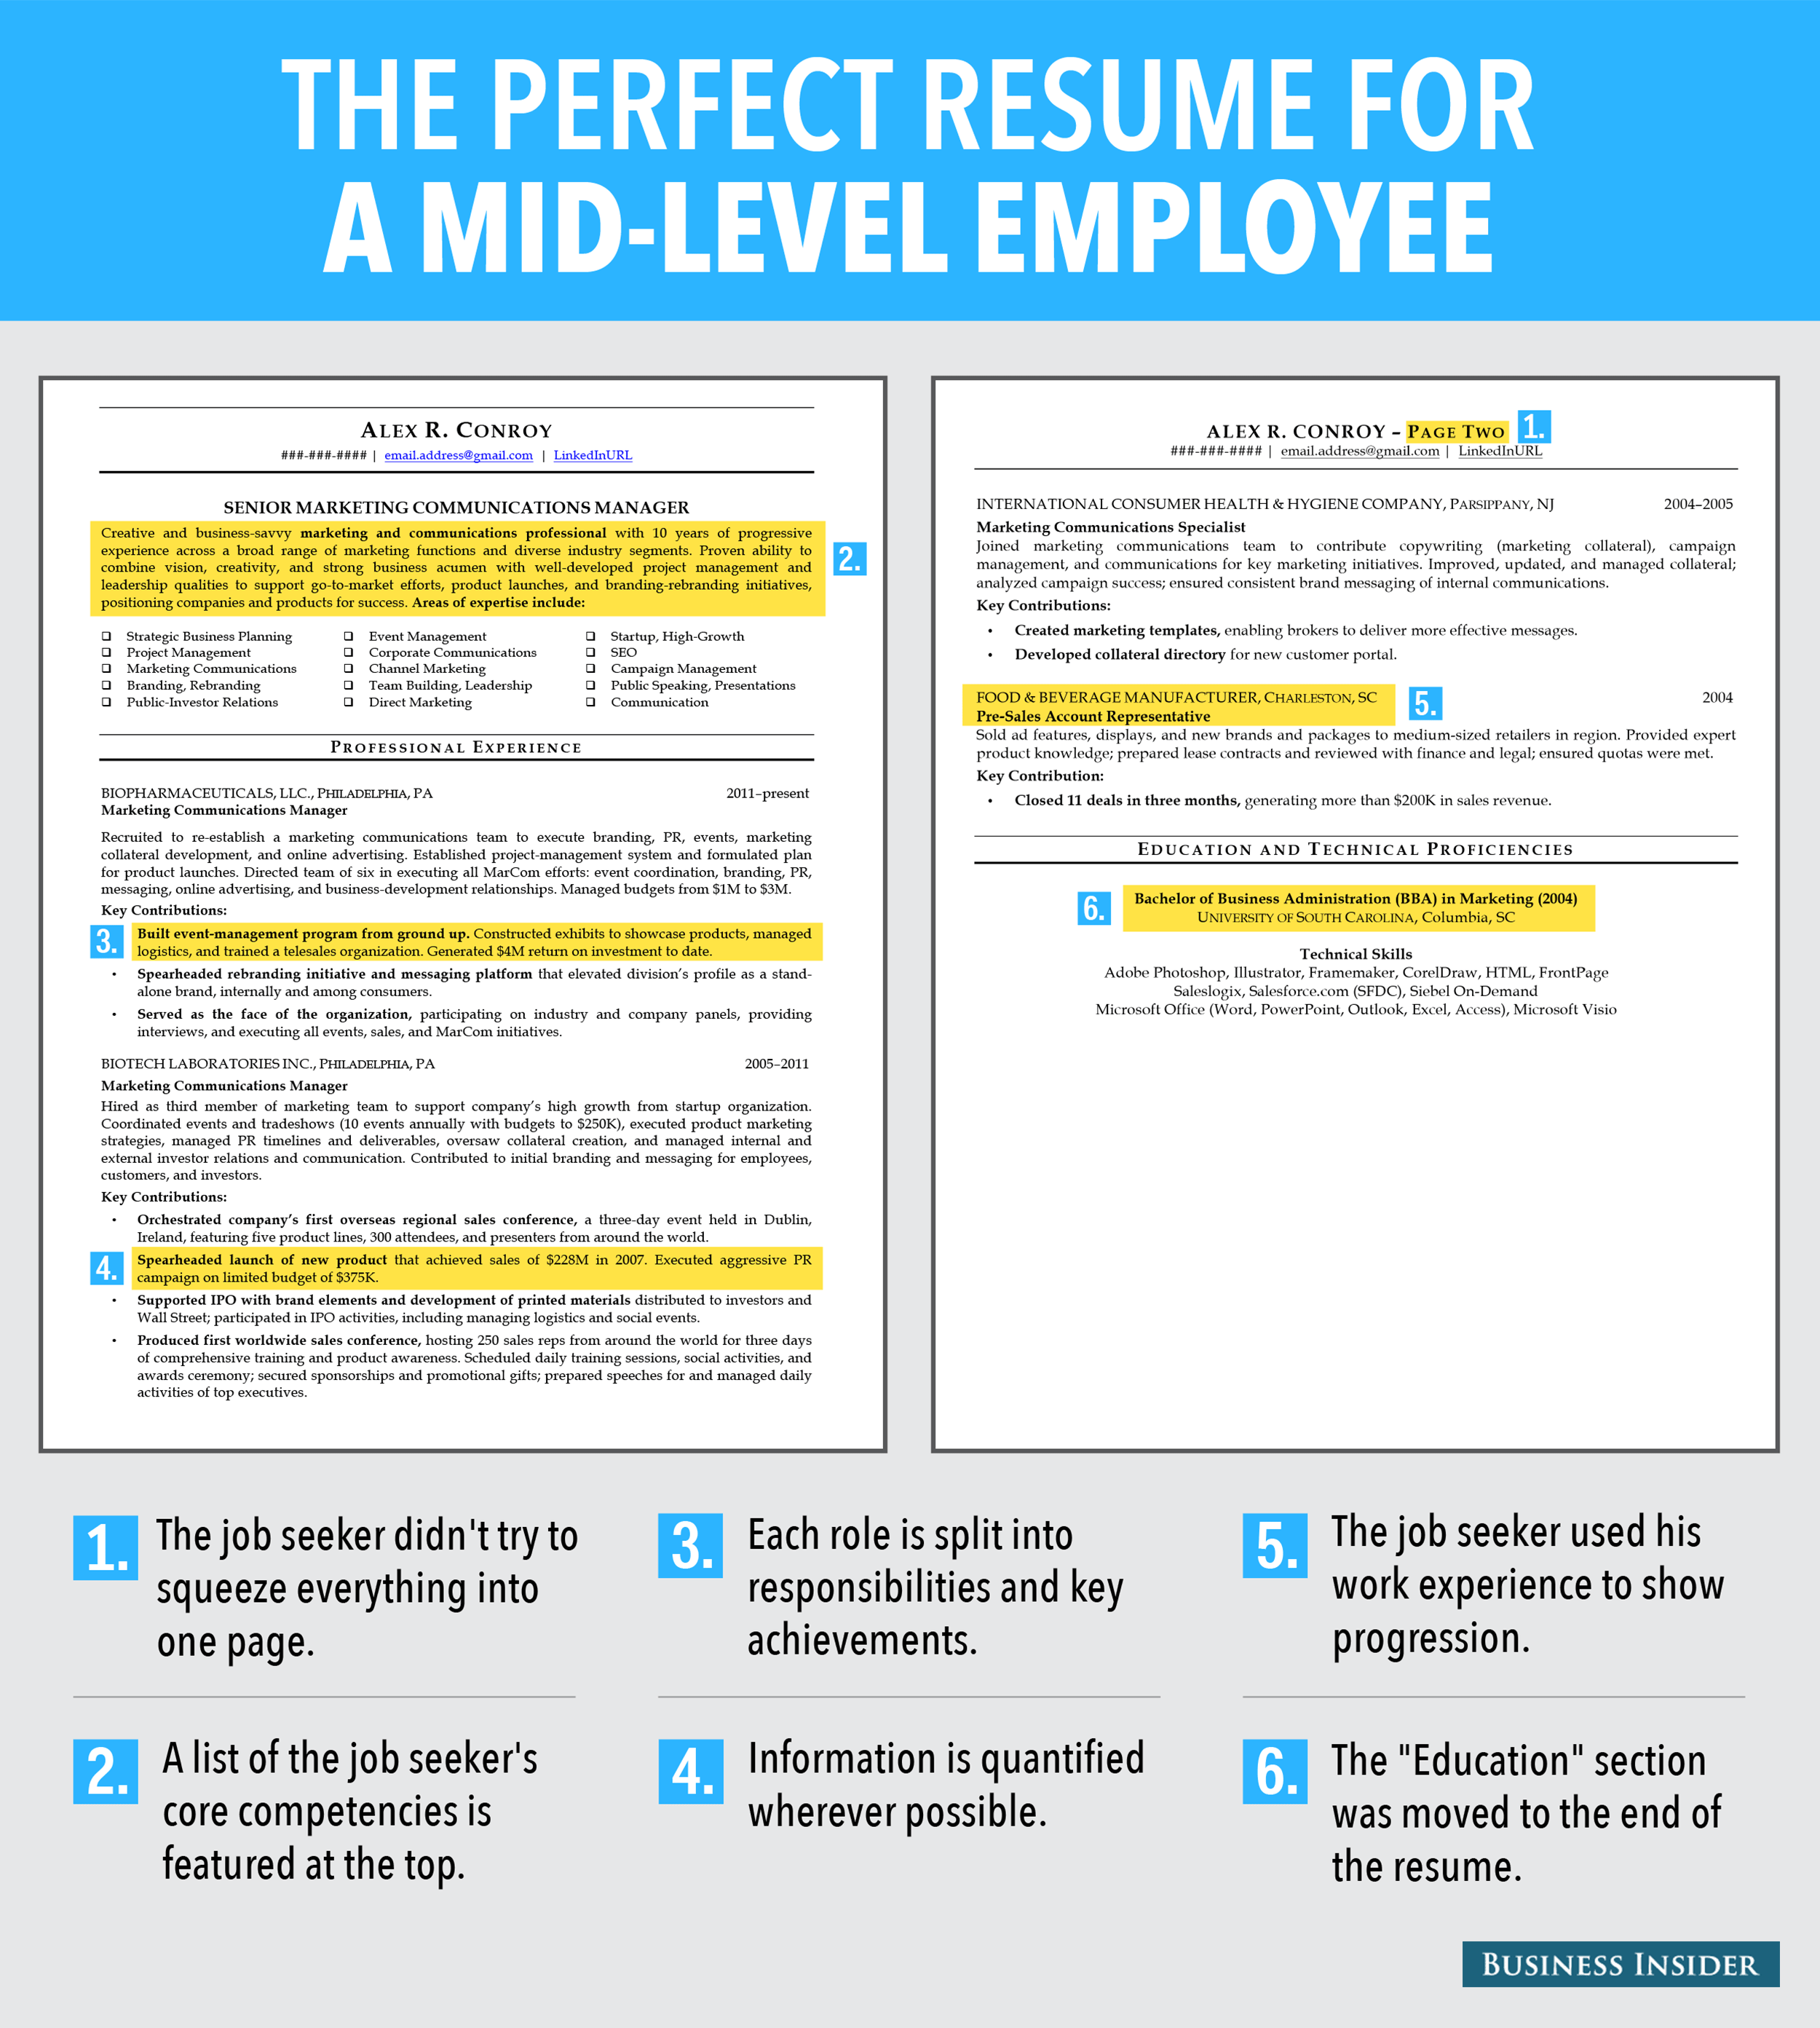 graphics, resume, ideal, mid-level